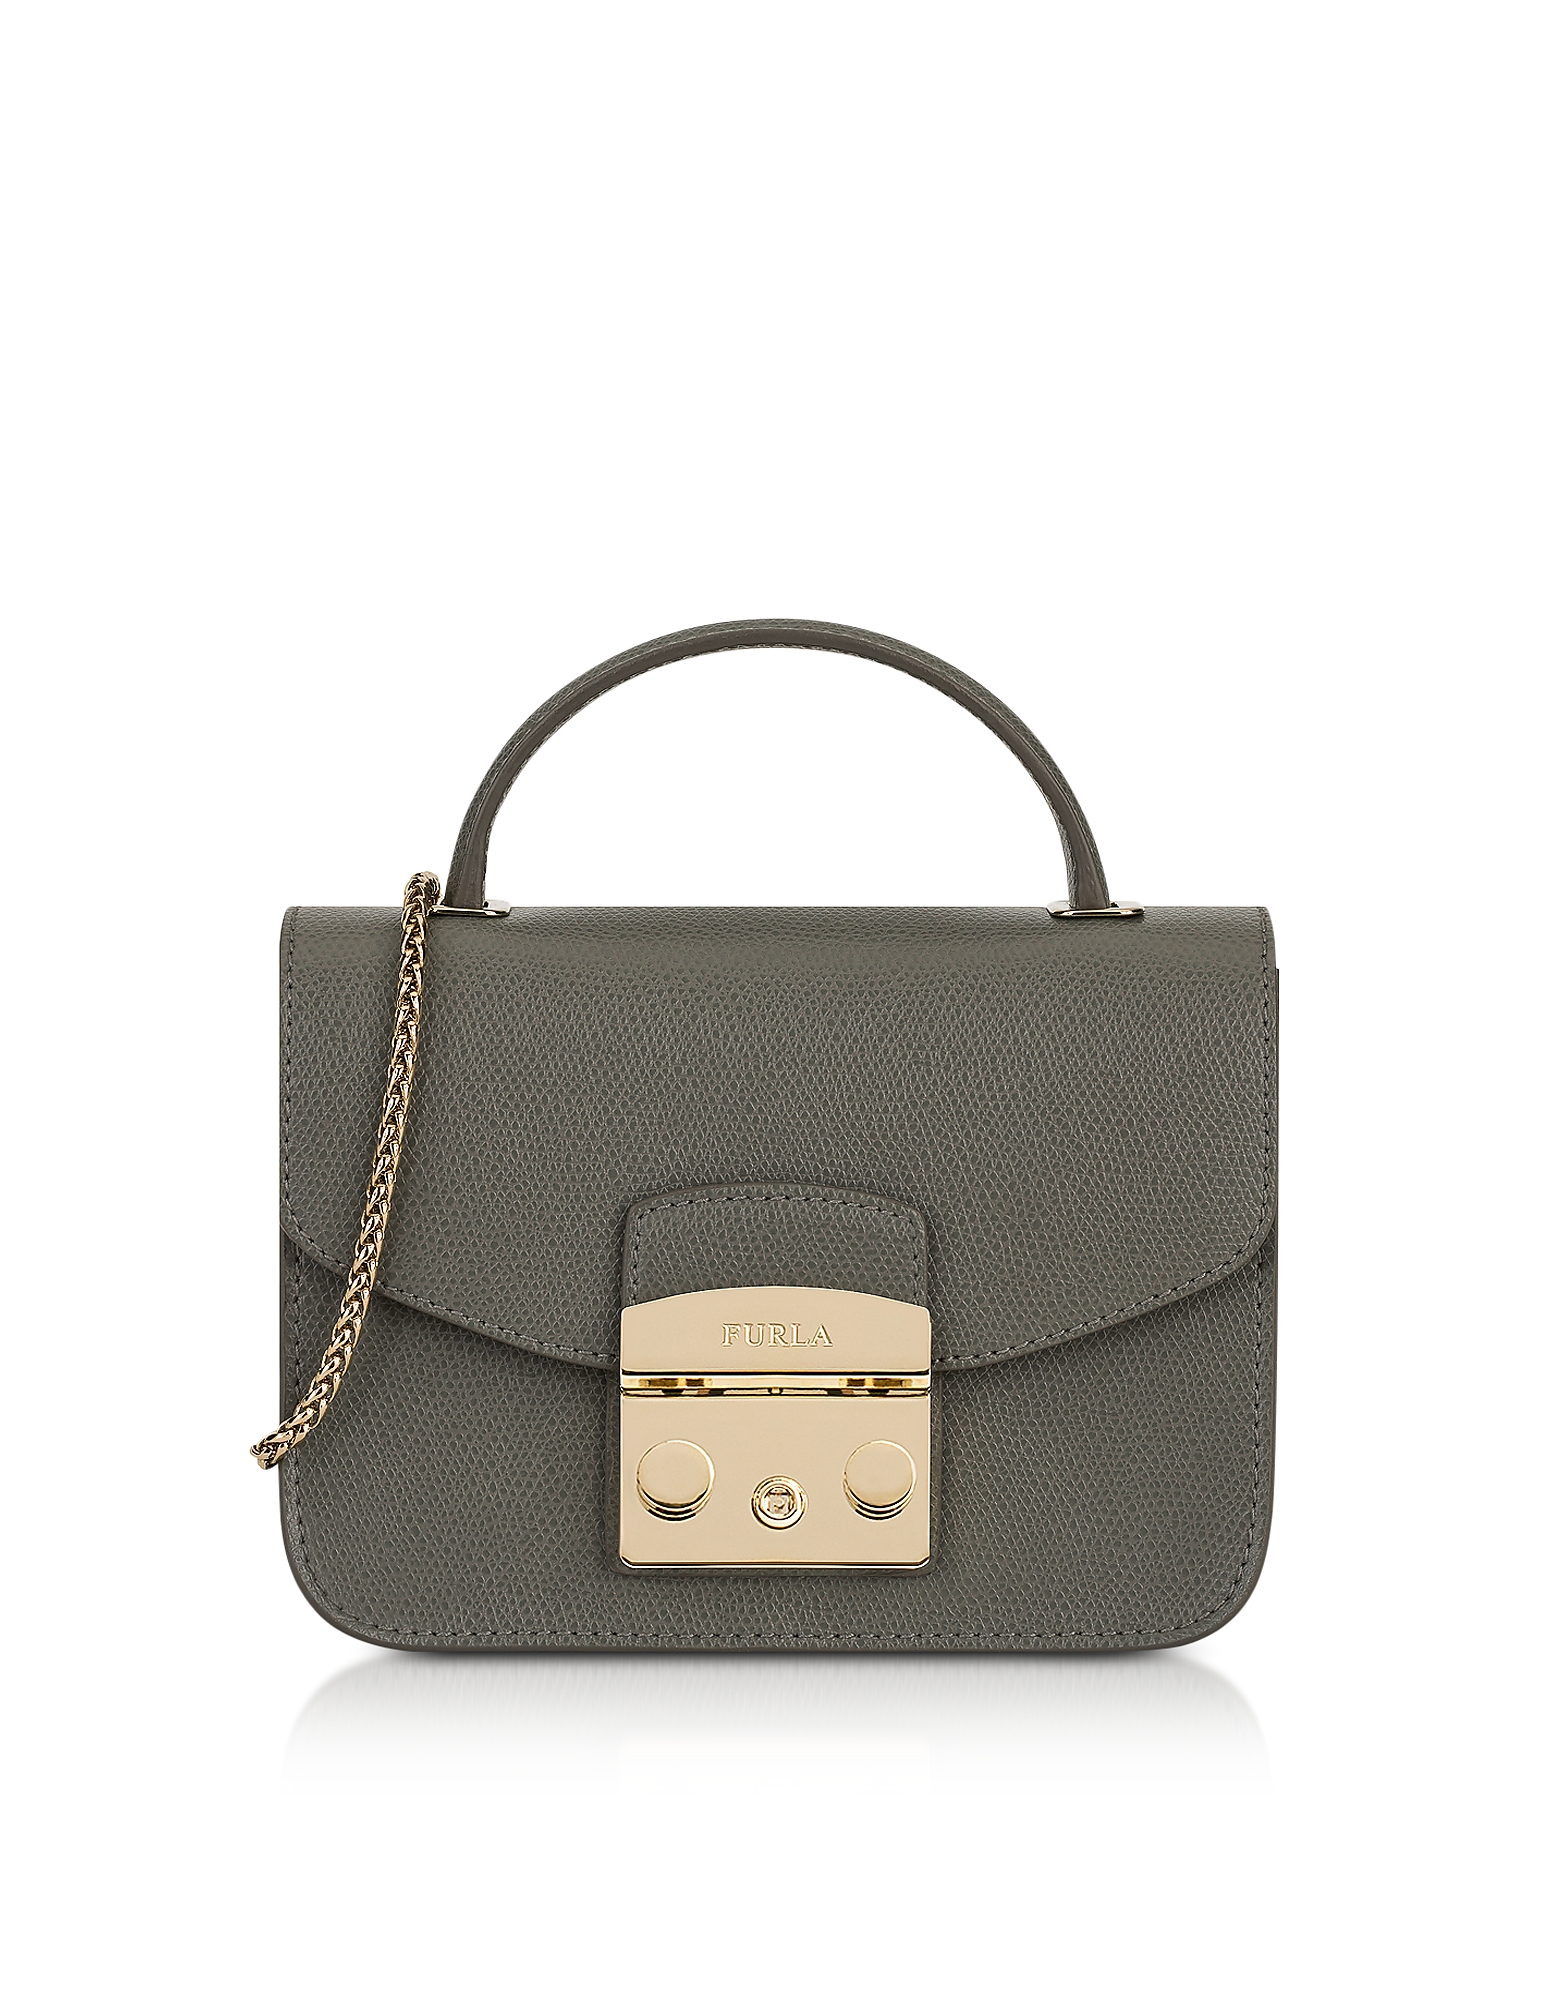 Furla Handbags, Argilla Metropolis Mini Top Handle Crossbody Bag